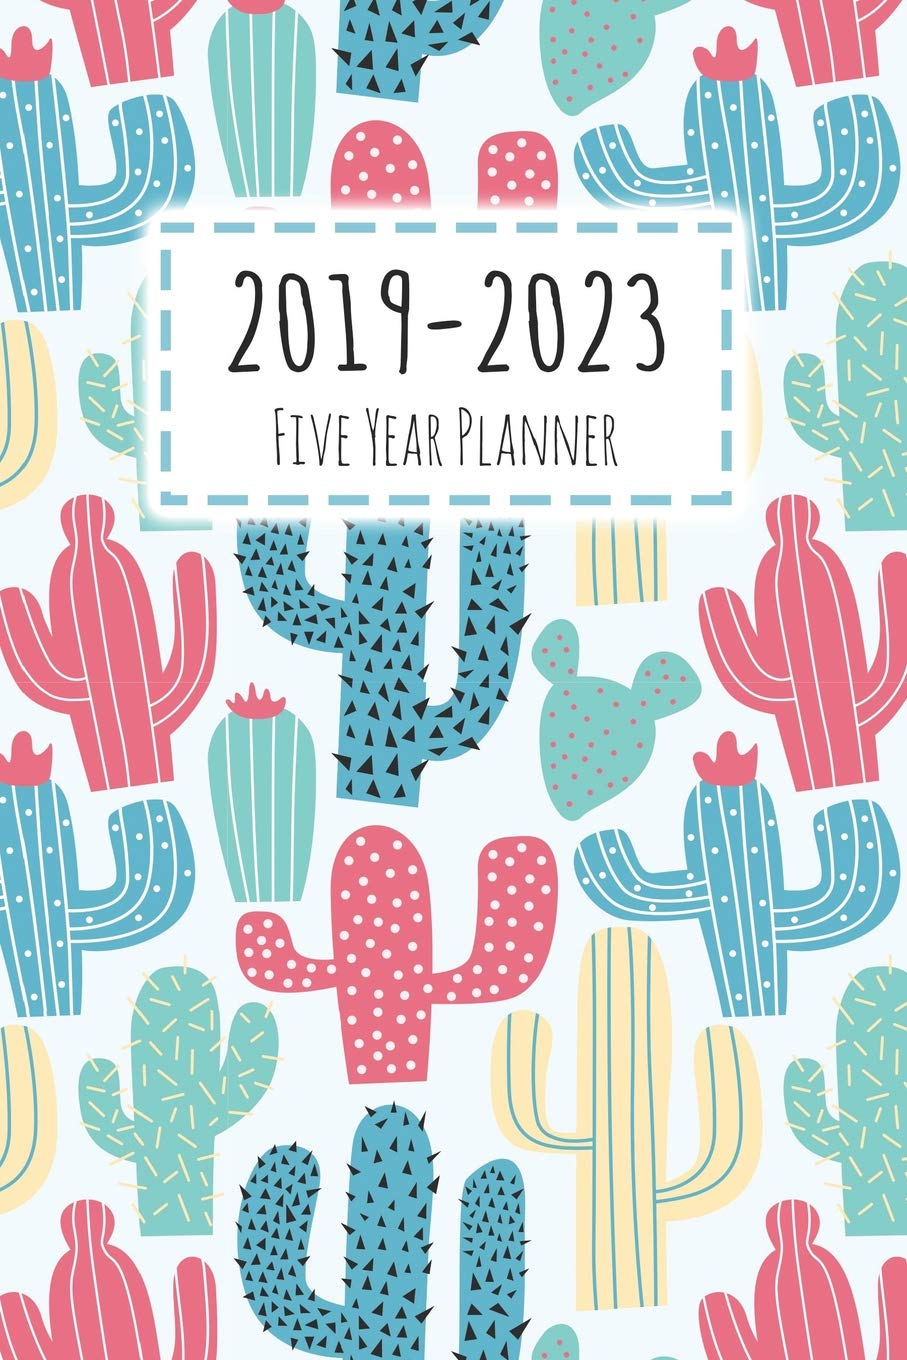 2019-2023 Five Year Planner: Monthly Schedule Organizer ...